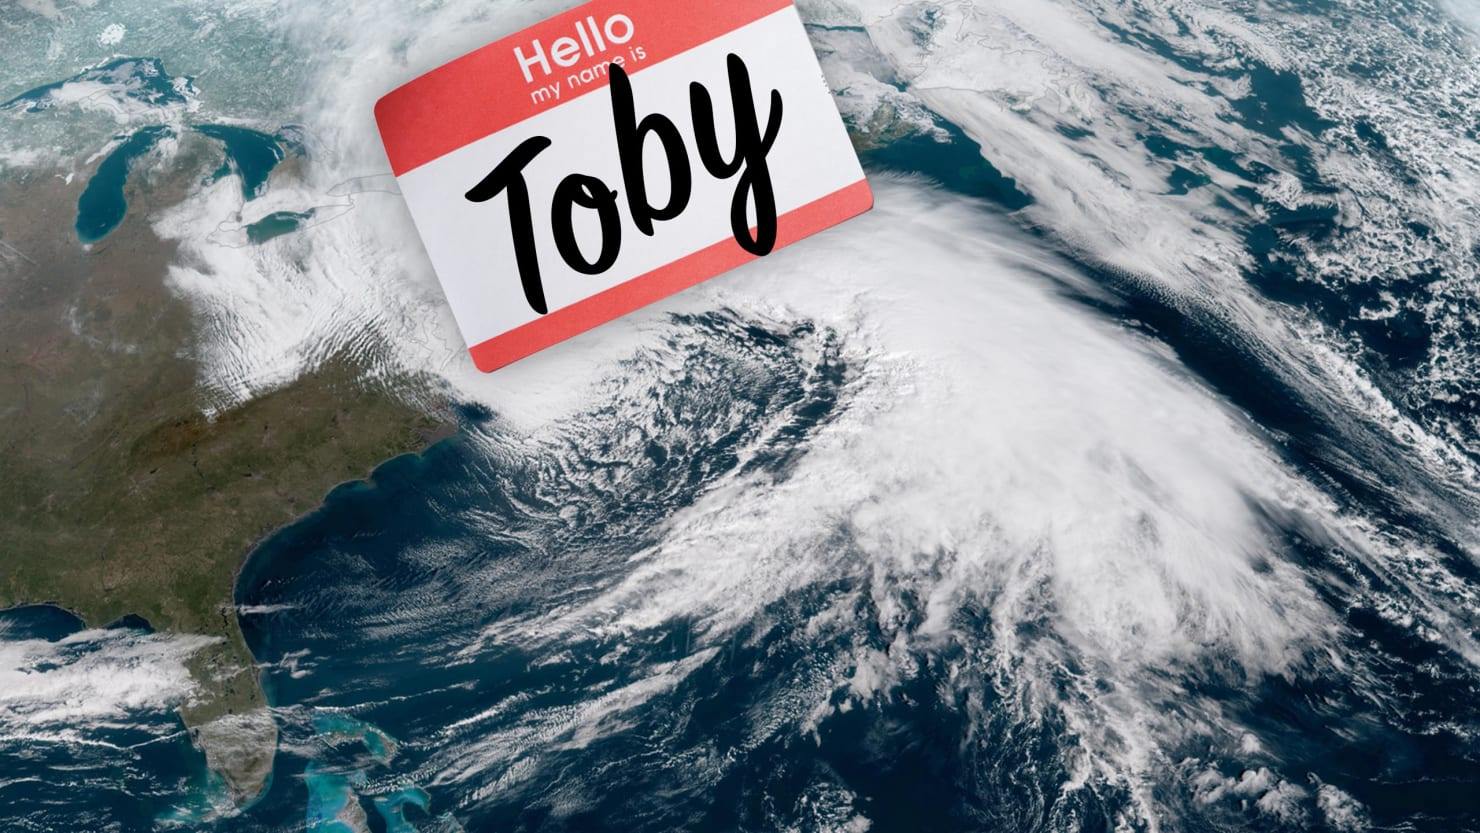 noreaster nor easter toby winter storm hurricane national weather service american meteorological society weather channel nora zimmett mike chesterfield adam rainear university of connecticut nws ams noaa snow severe